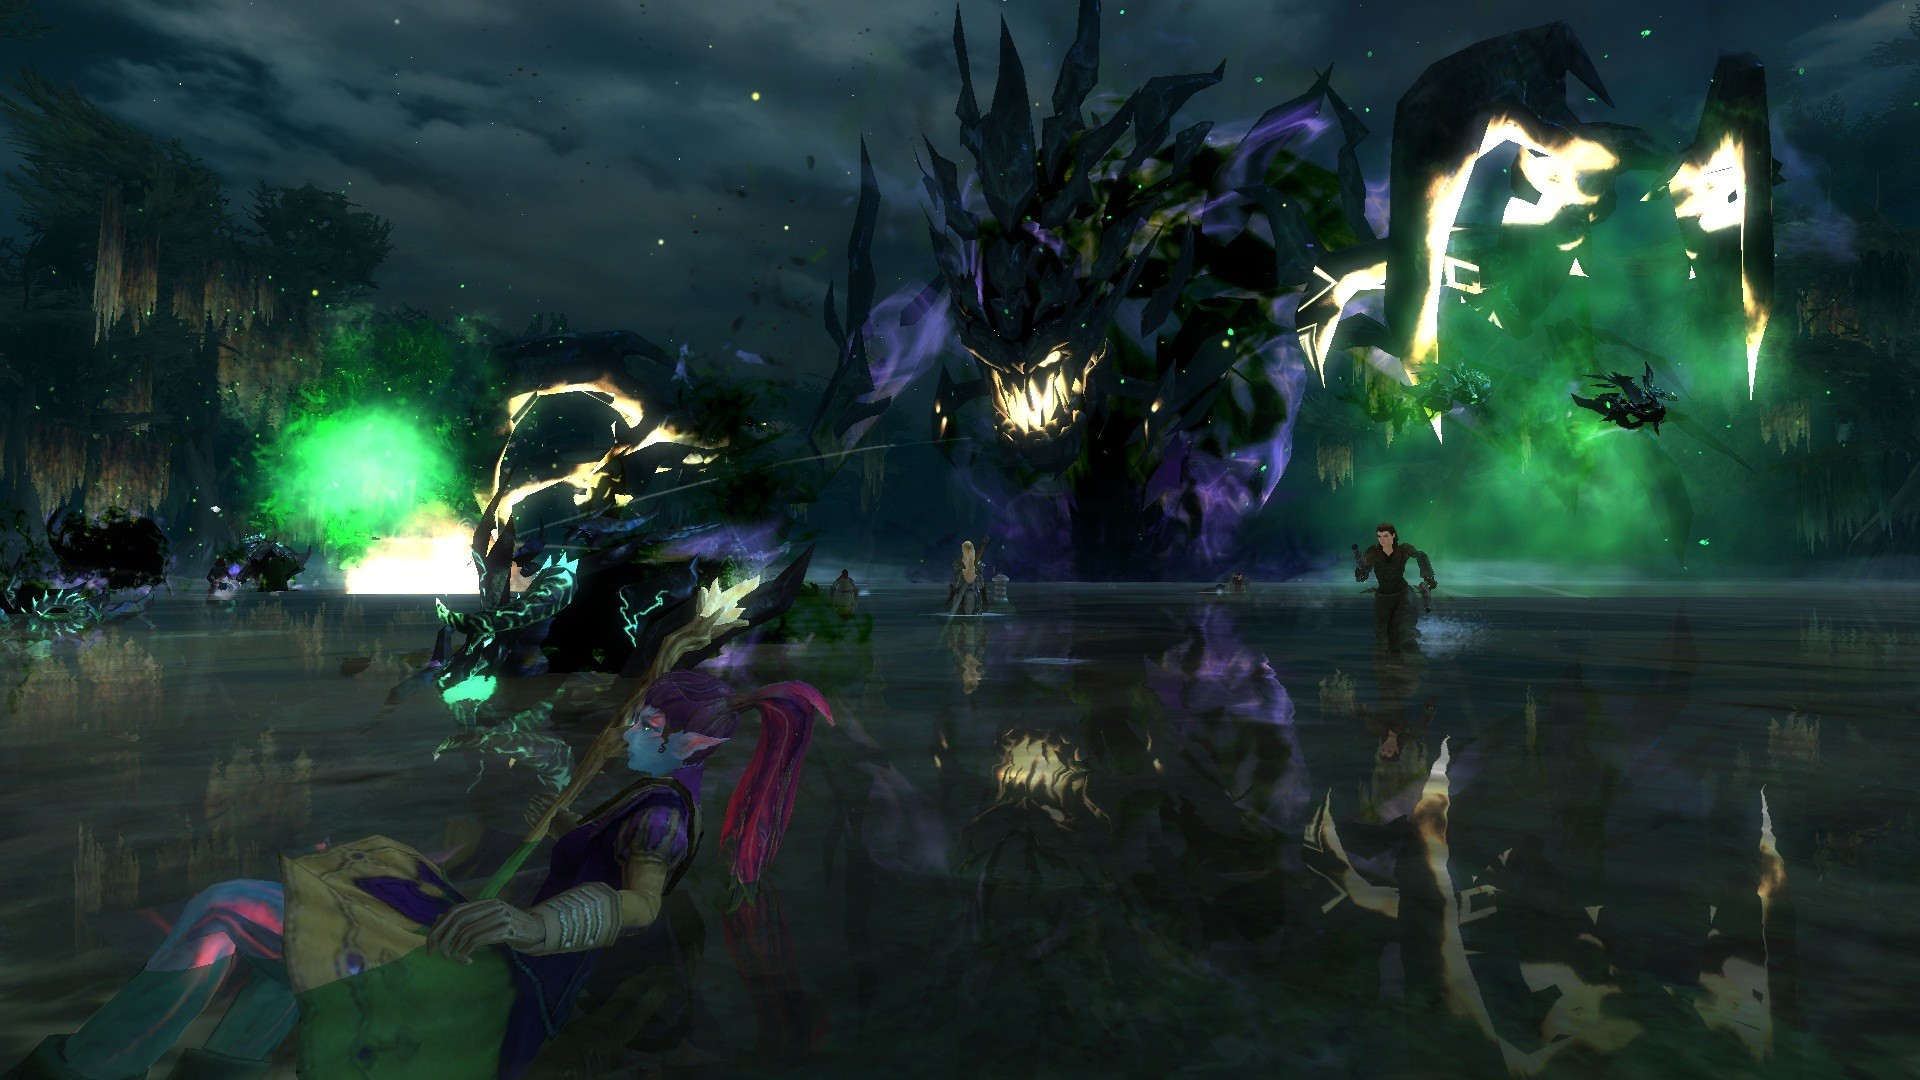 Guild Wars 2 - Uh ohh I opened the portal th the underworld